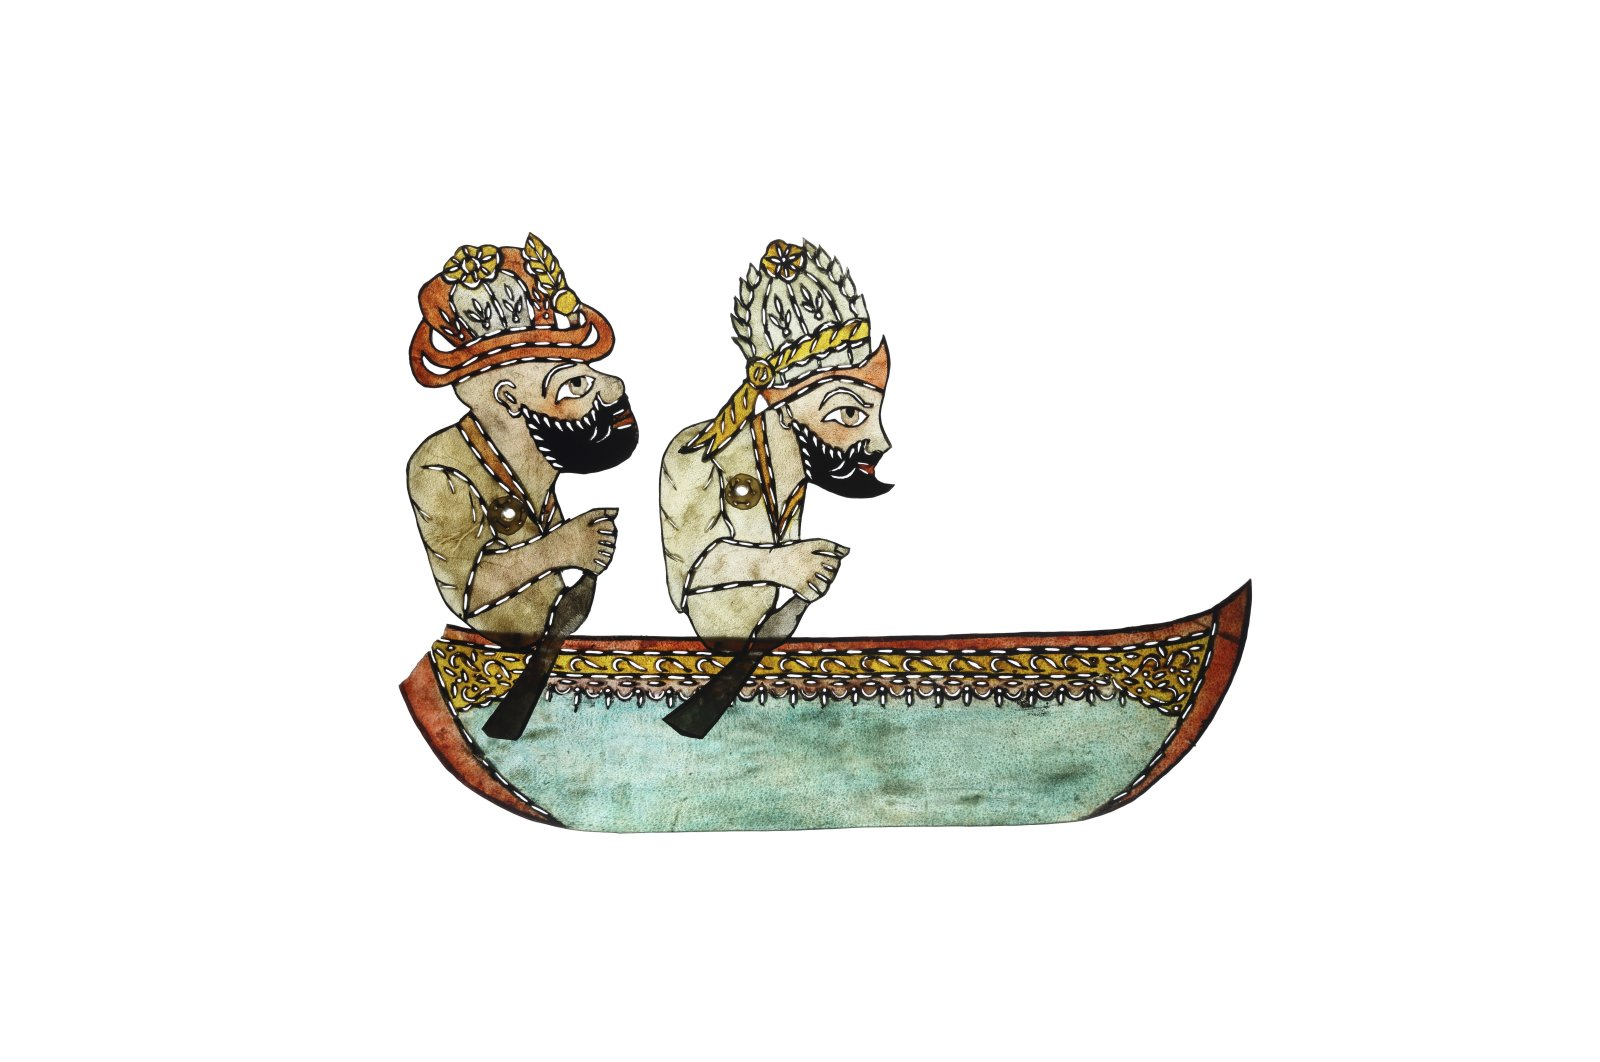 """""""Karagöz and Hacivat in a Boat,"""" camel leather, 25.7 by 36.5 centimeters (10.1 by 14.3 inches), Yapı Kredi Museum. (Courtesy of YKY Arts and Culture)"""